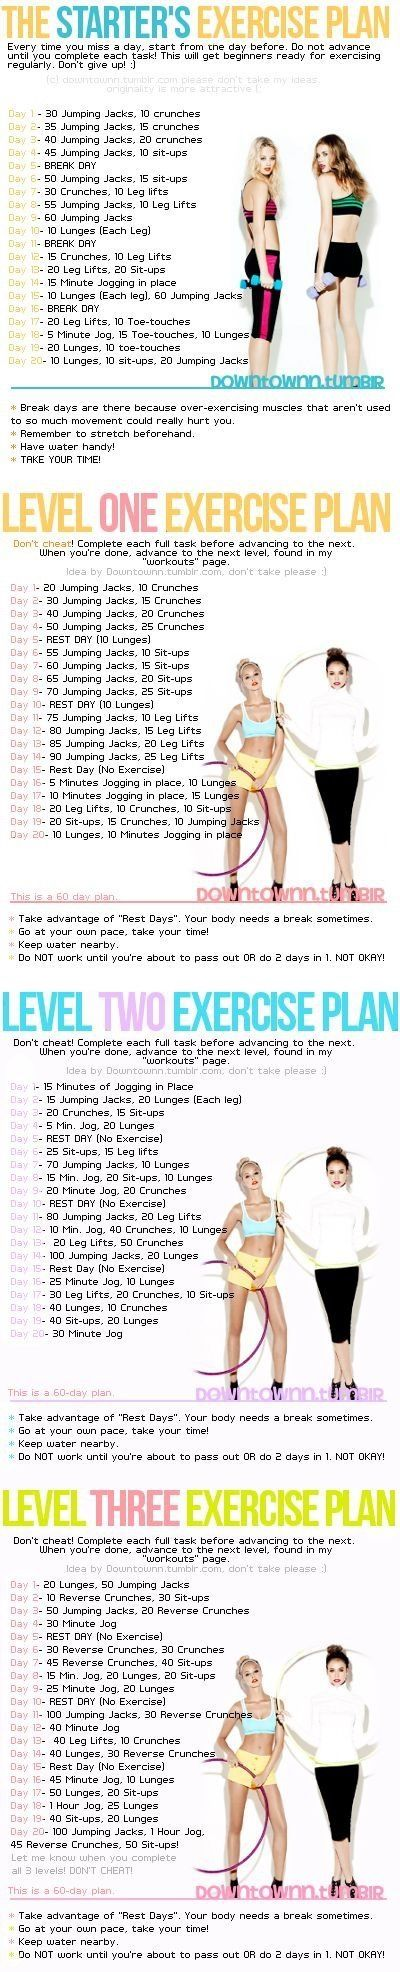 Seems doable! #fitness #beginner....  Find out more at the image #weightlossmotivation